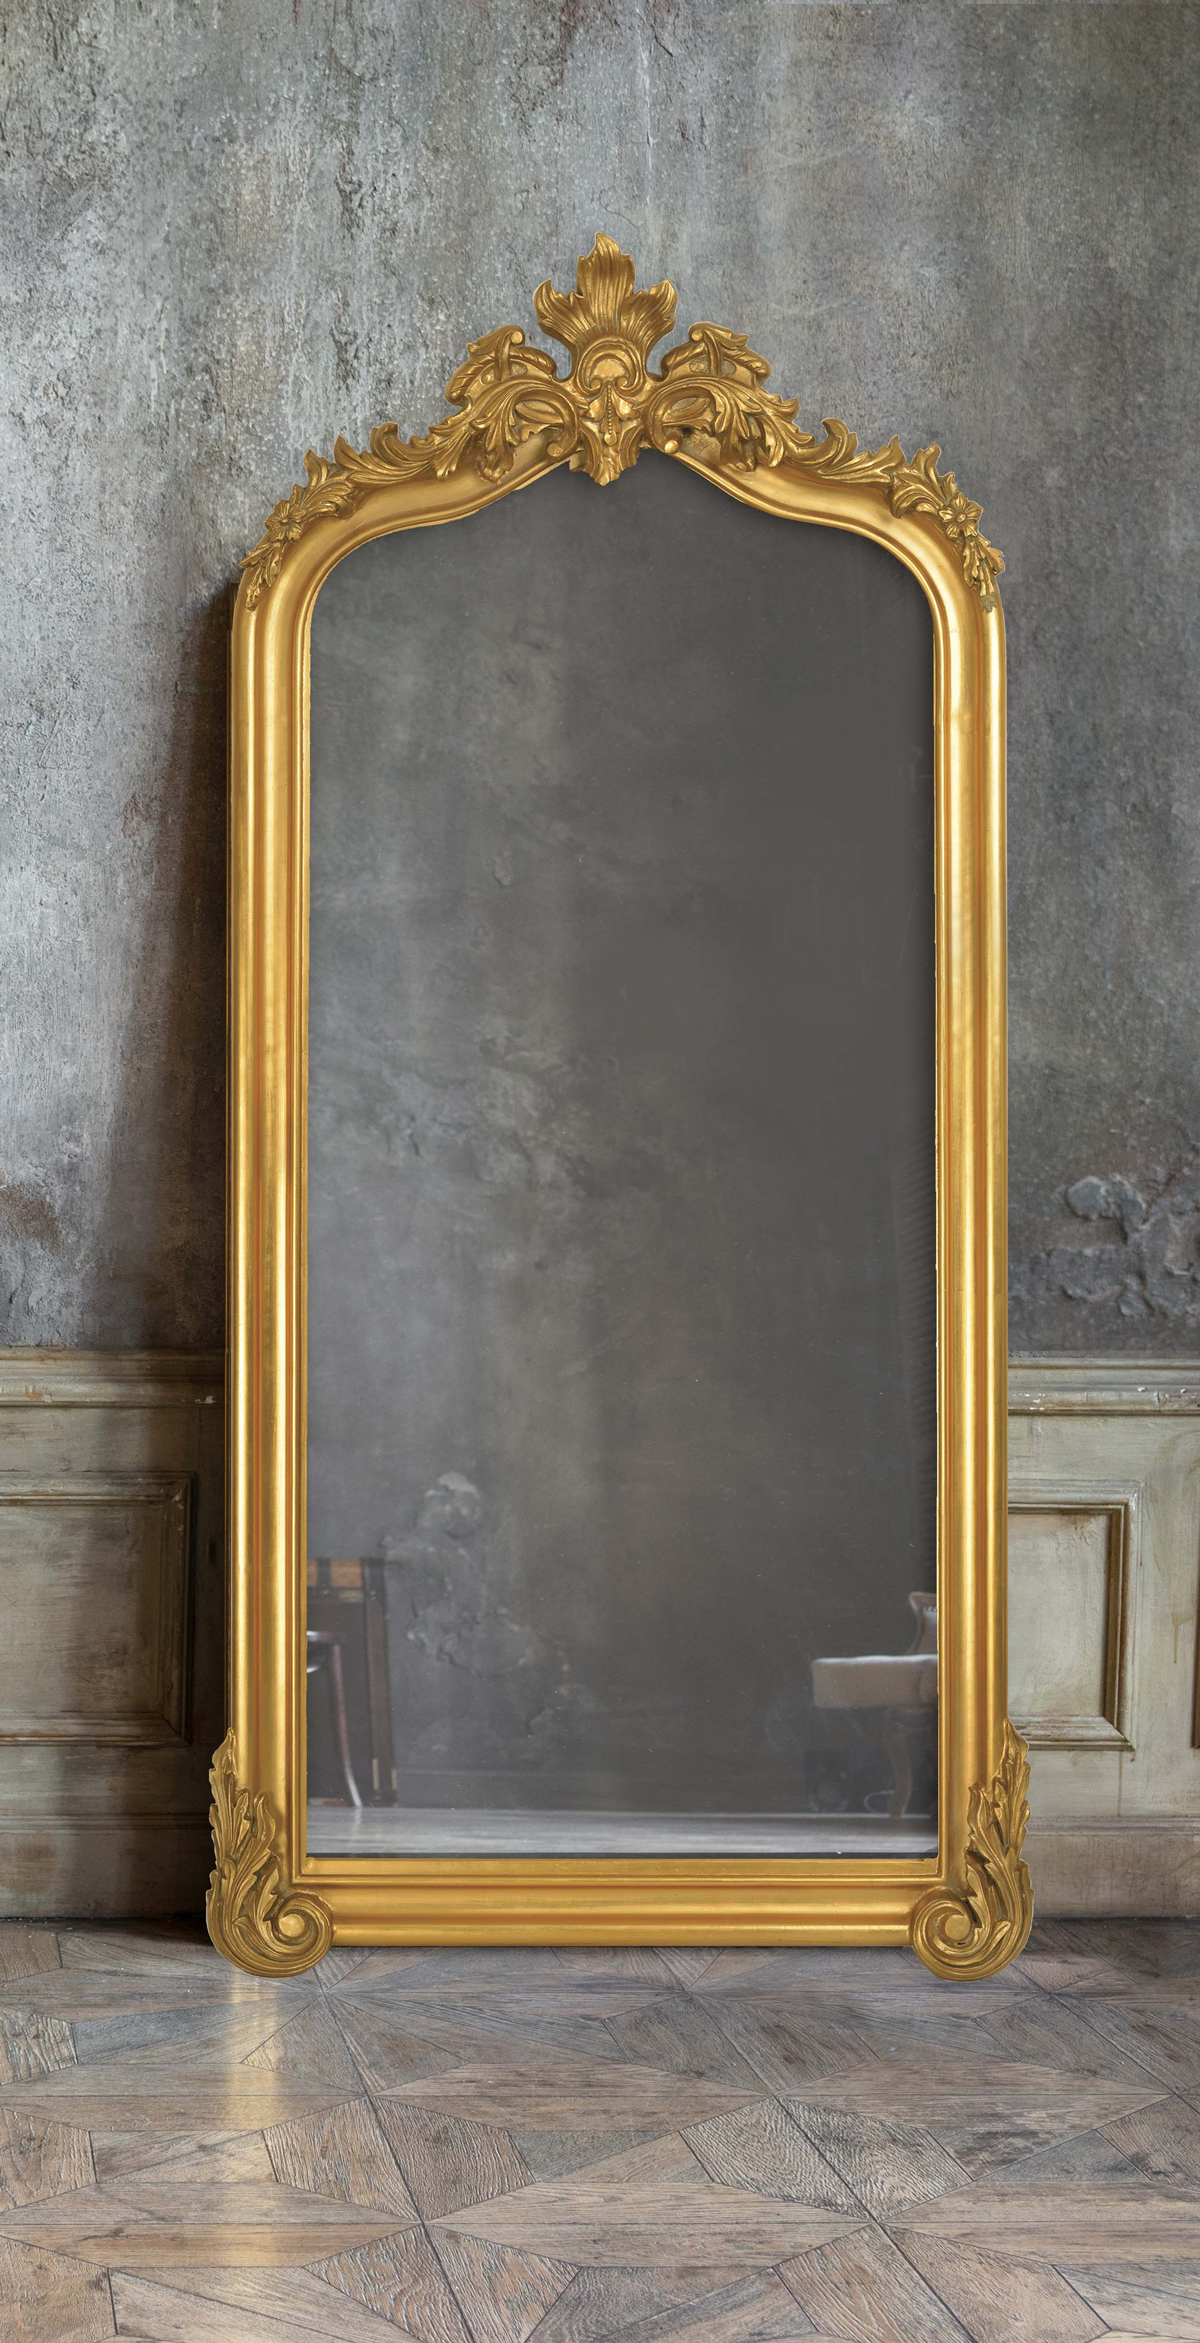 Large Gold Leaning Mirror With Intricate Detail In Regal Style Gold Mirror Living Room Gold Floor Mirror Mirror Wall Bedroom